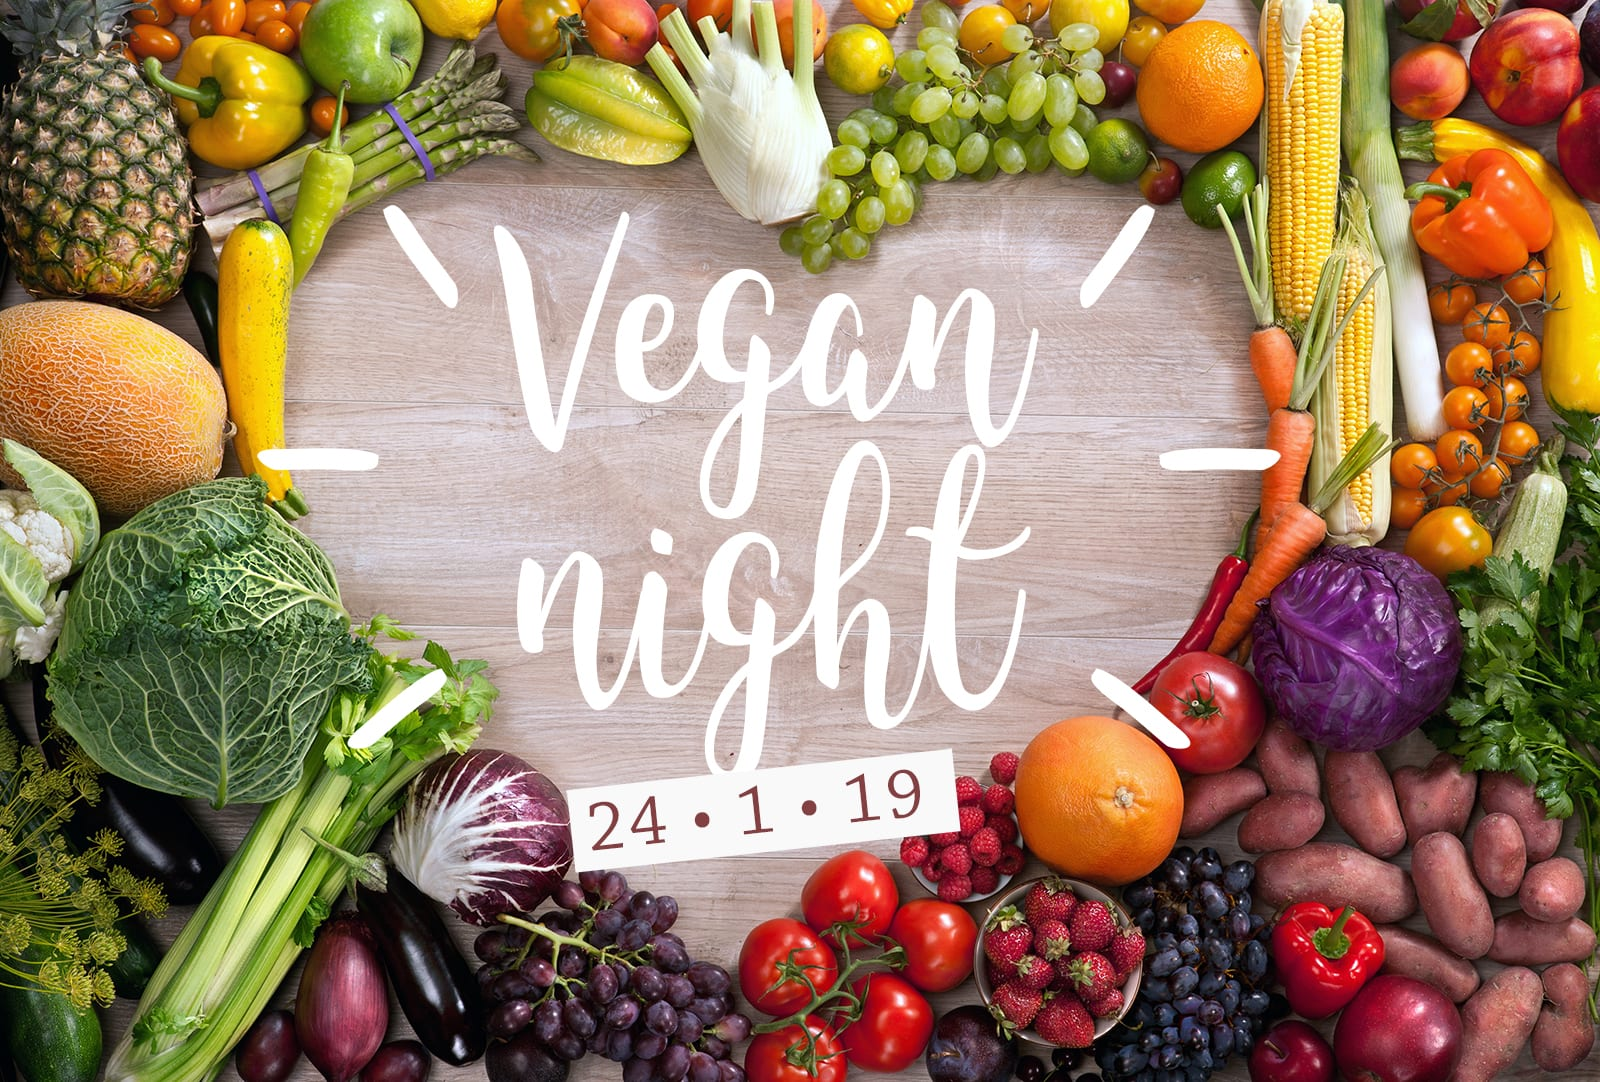 vegan culinary night